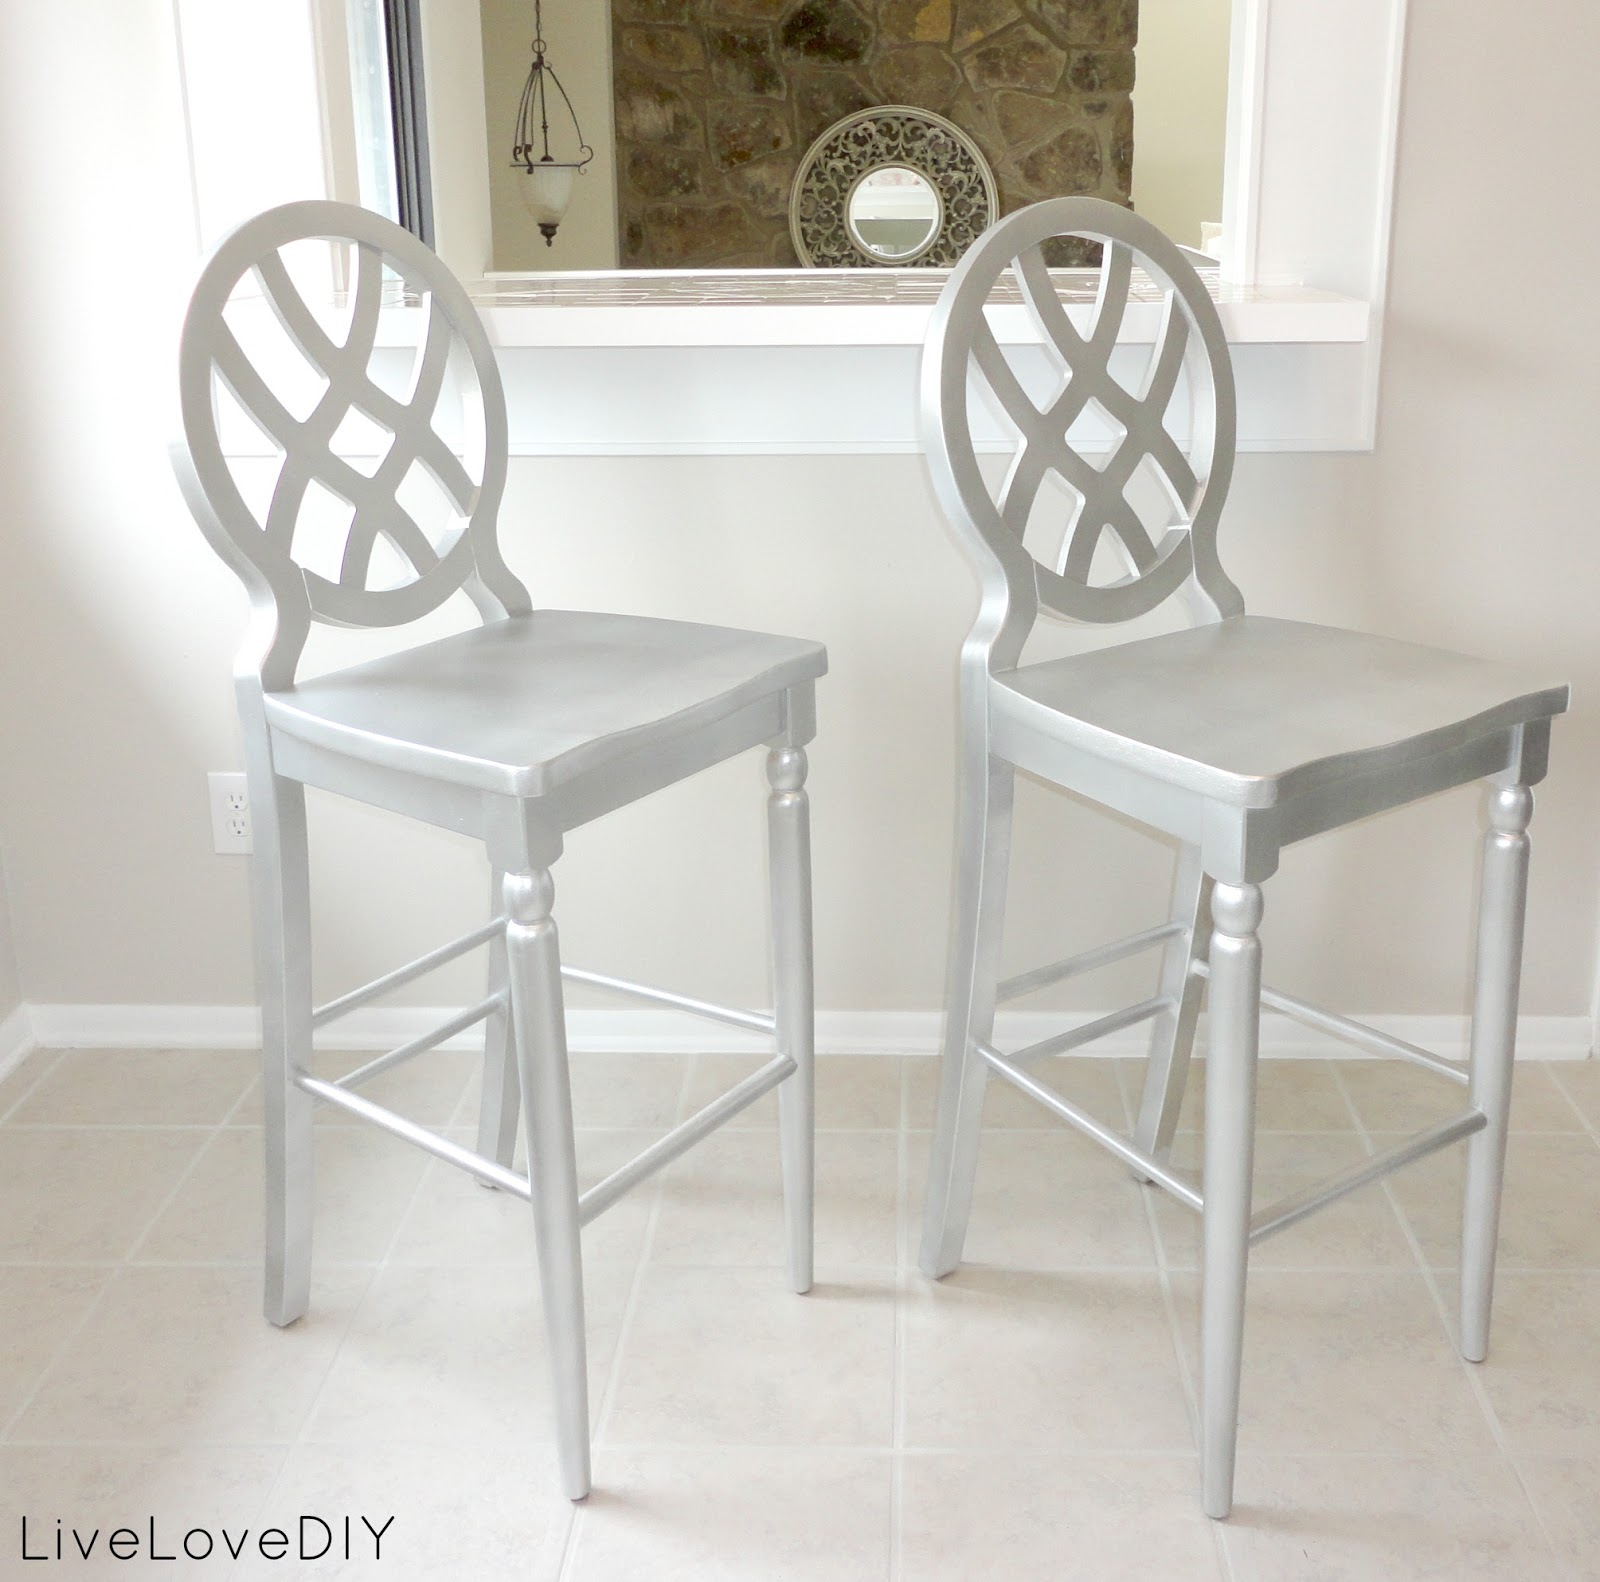 Livelovediy creative ways to update your kitchen using paint for Painted kitchen chairs